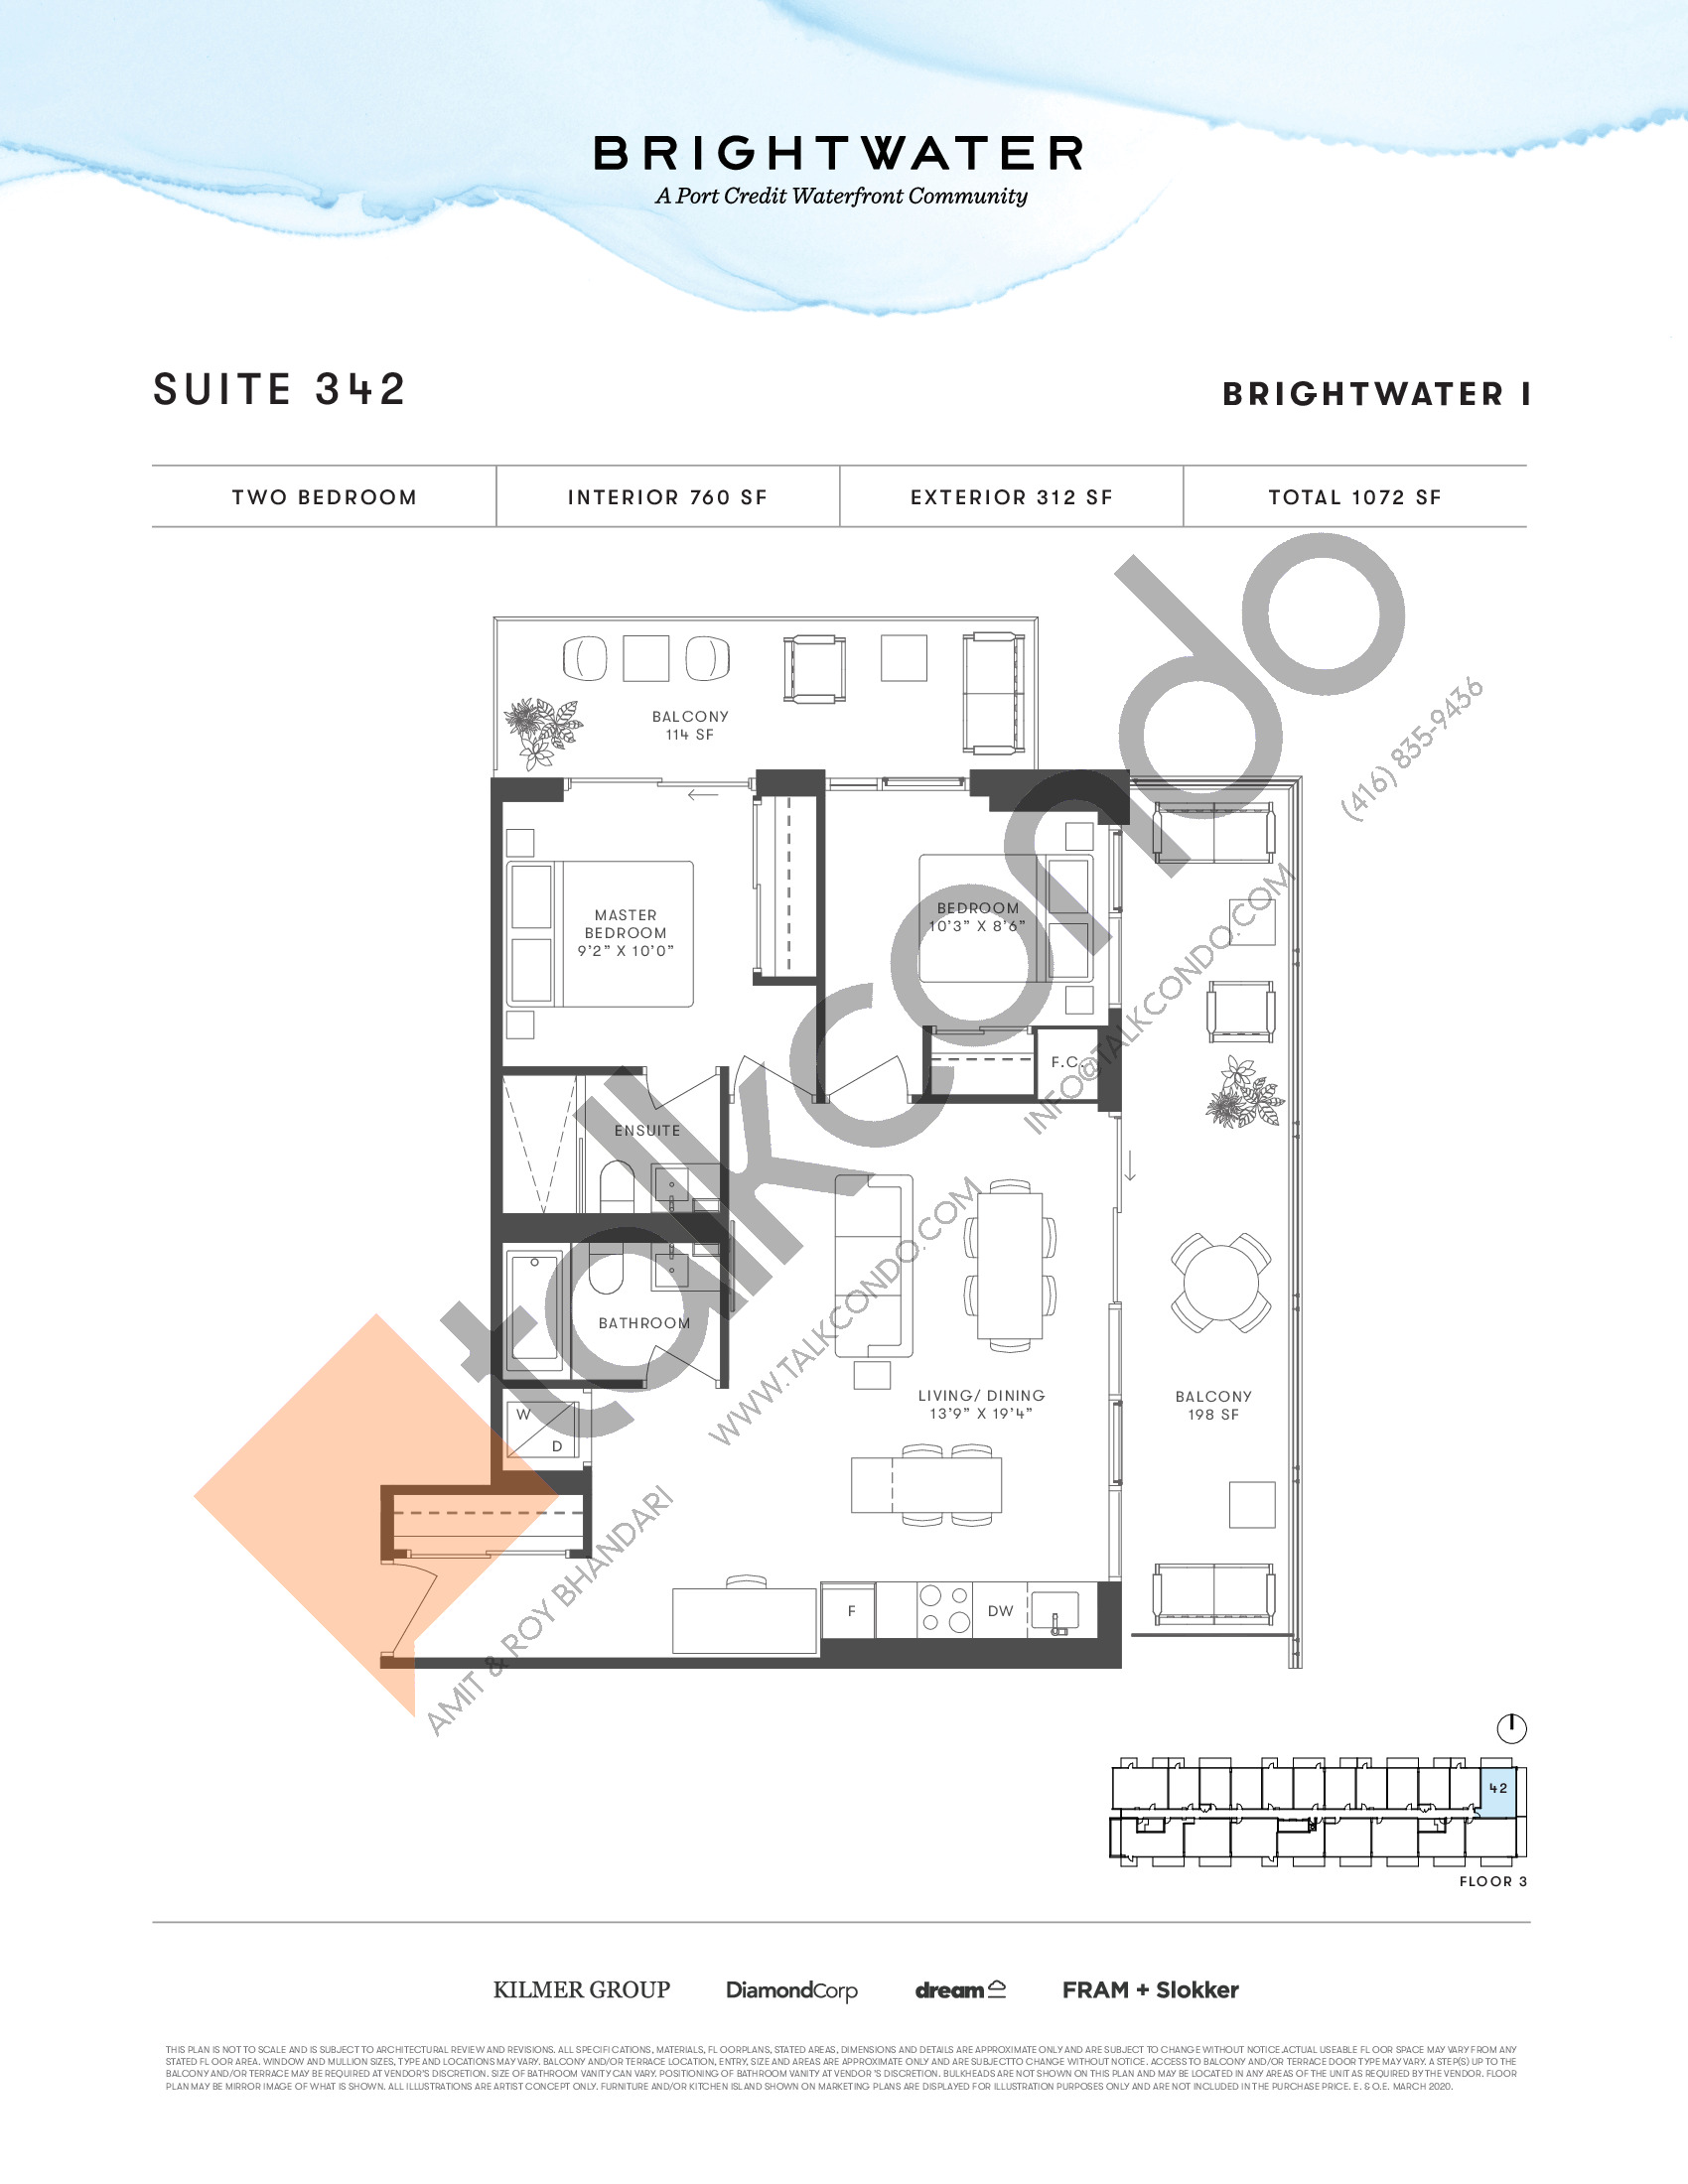 Suite 342 Floor Plan at Brightwater I Condos - 760 sq.ft